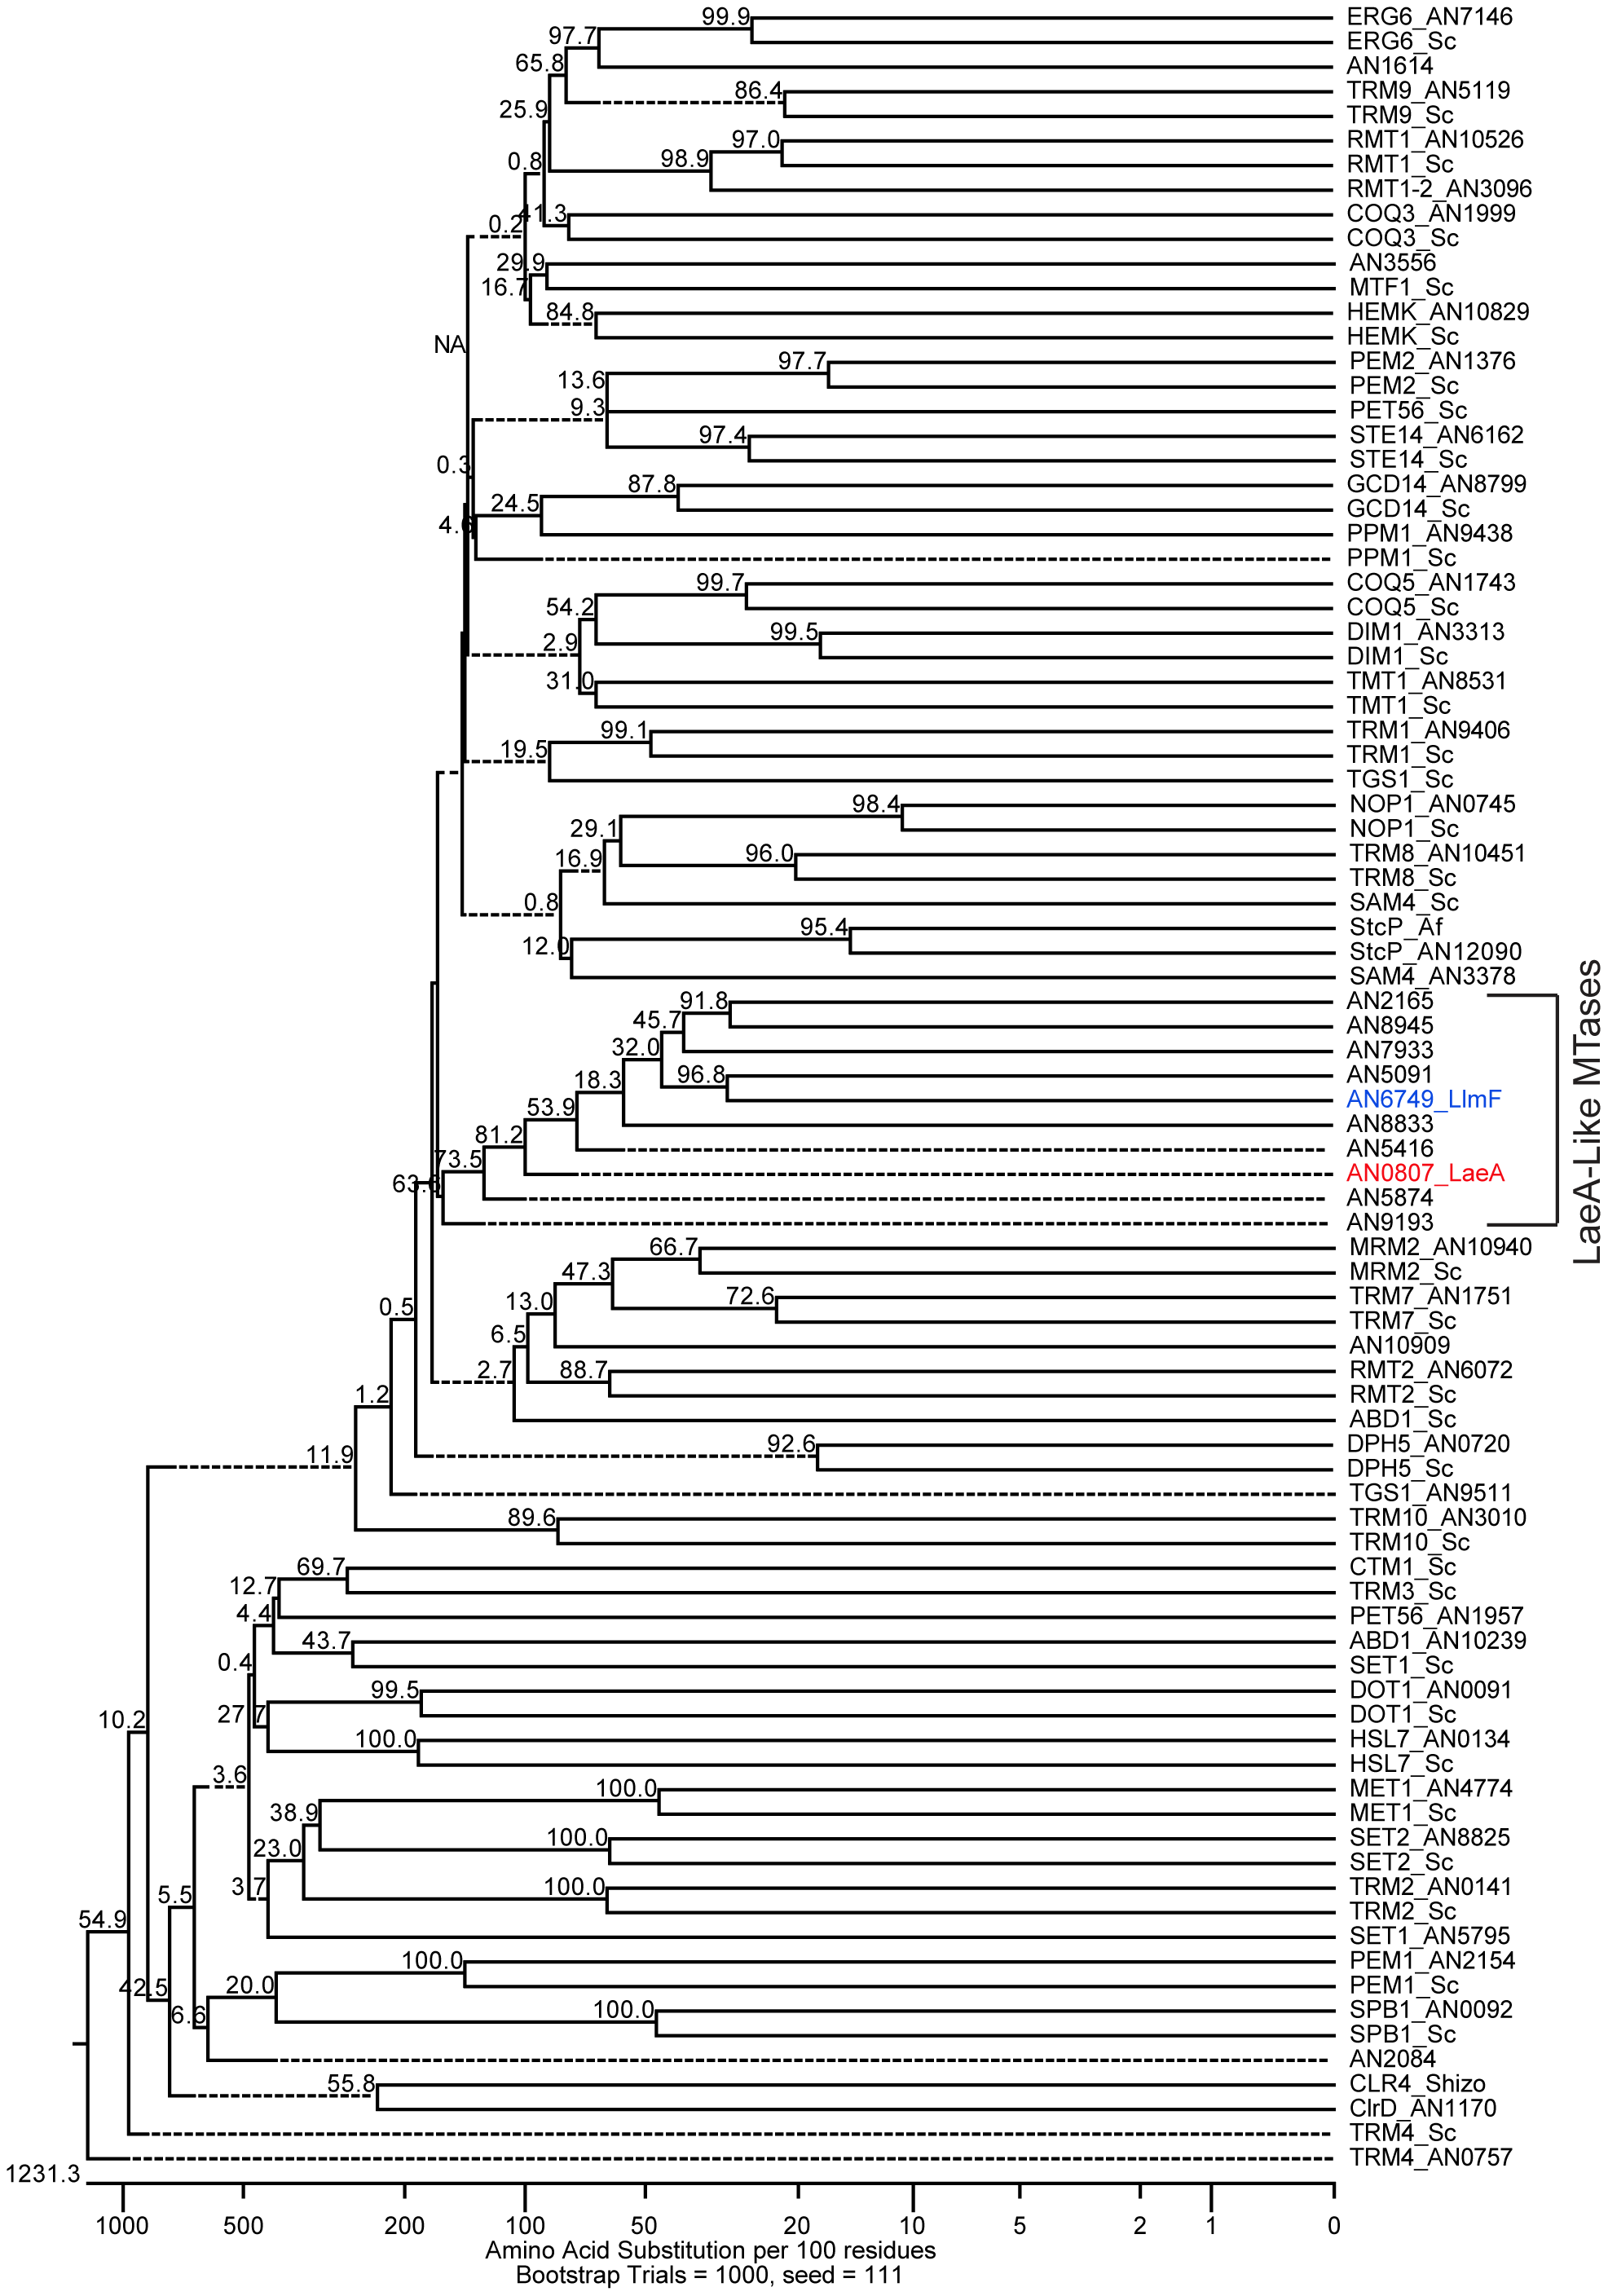 Reverse genetics identified LaeA-like methyltransferases in <i>A. nidulans</i>.